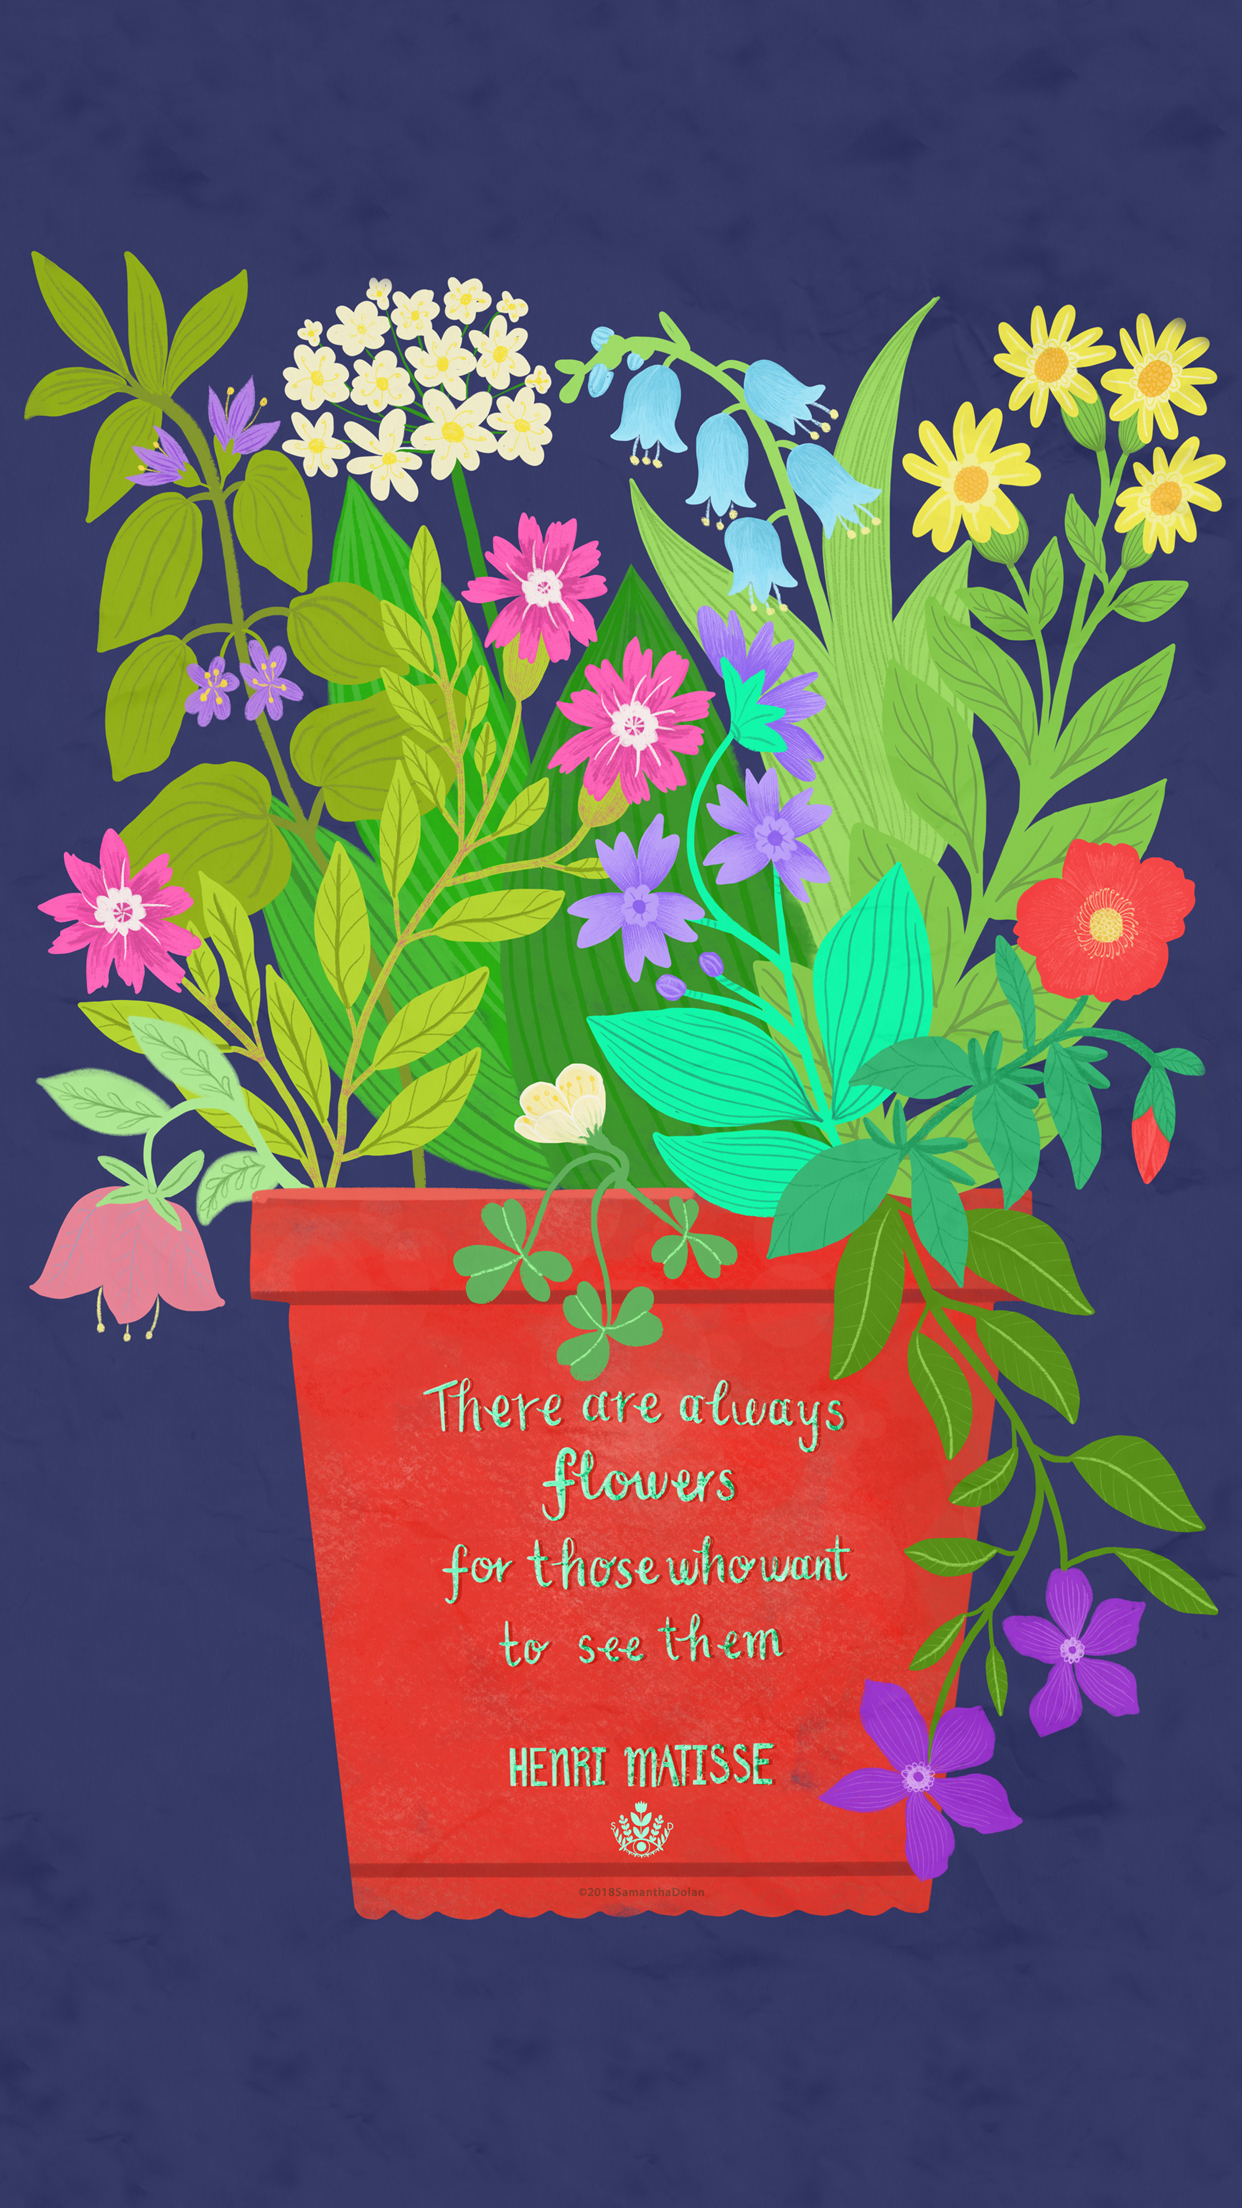 there are always flowers for those who want to see them matisse wallpaper by samantha dolan.jpg